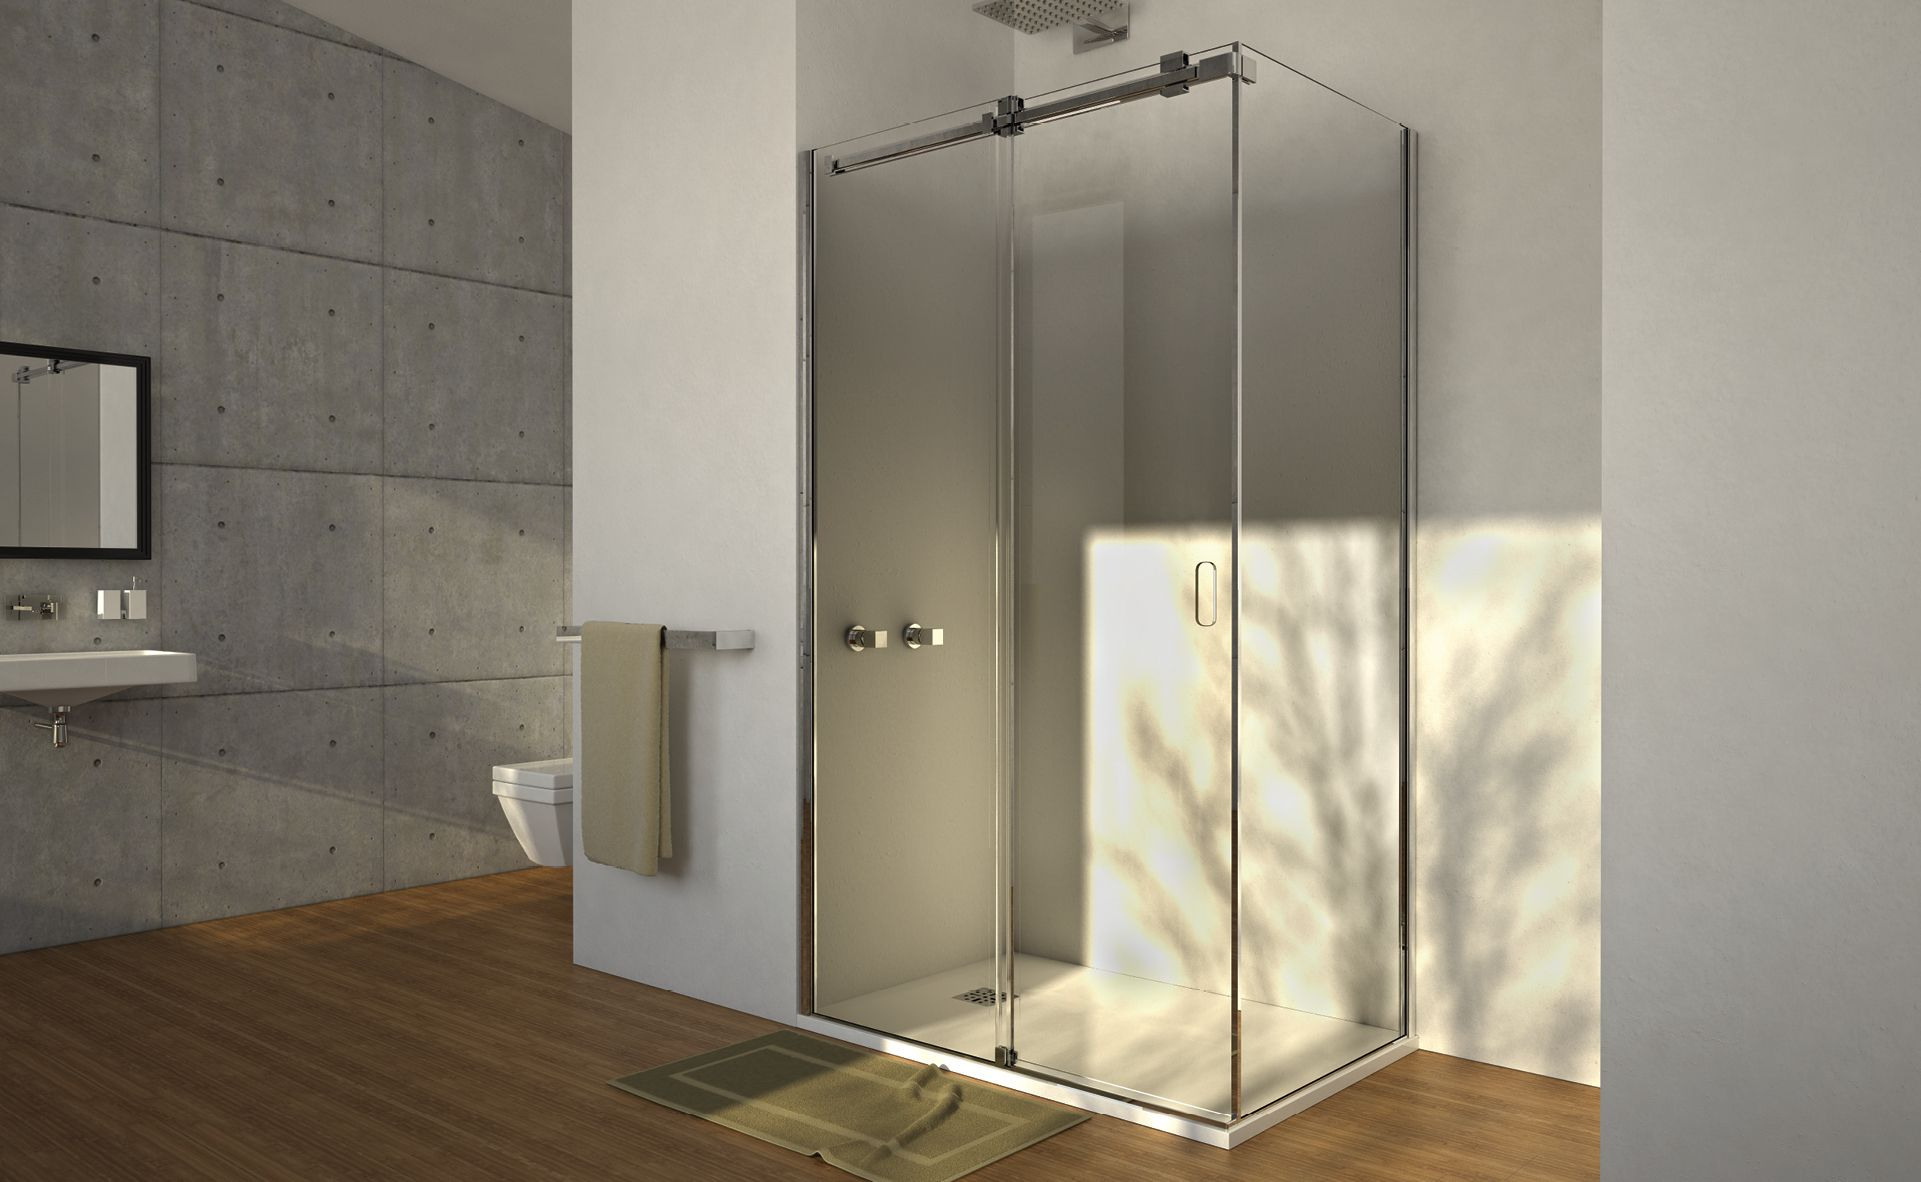 SERIES OPEN AIR Shower room, Bathroom